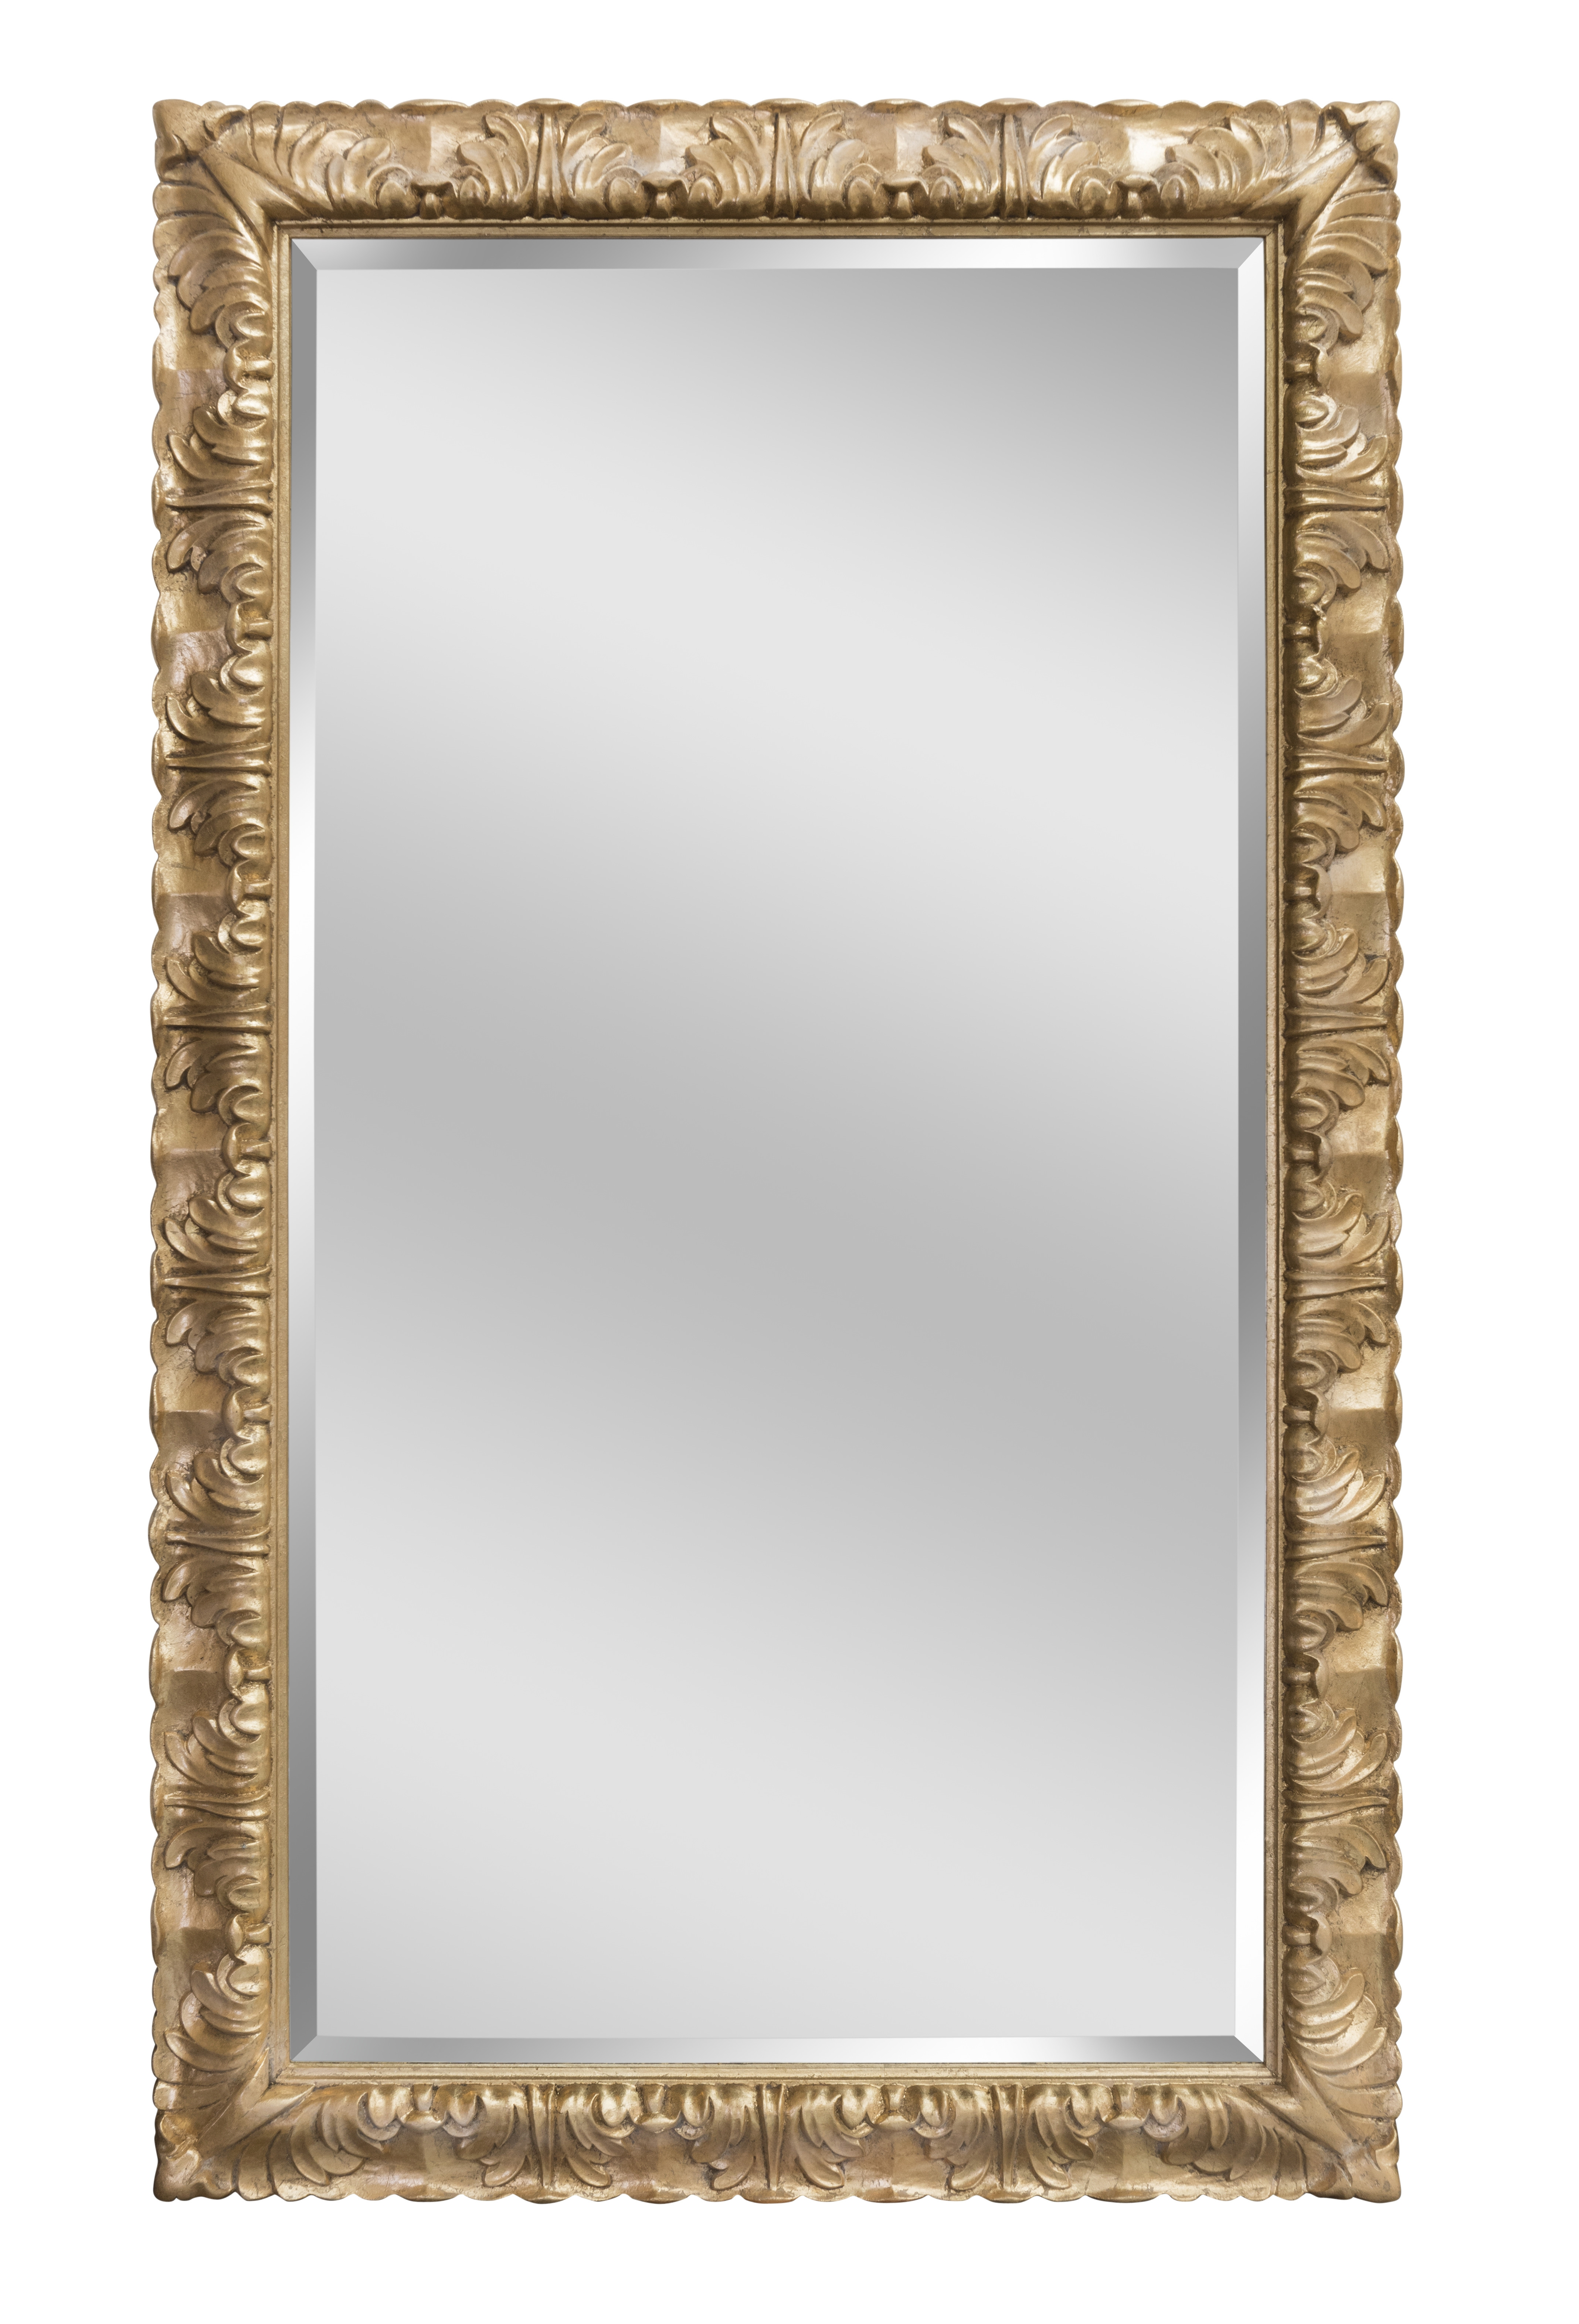 Gold Donatello Mirror Long Bedroom Mirrors For Sale Panfili Within Long Gold Mirror (View 2 of 15)